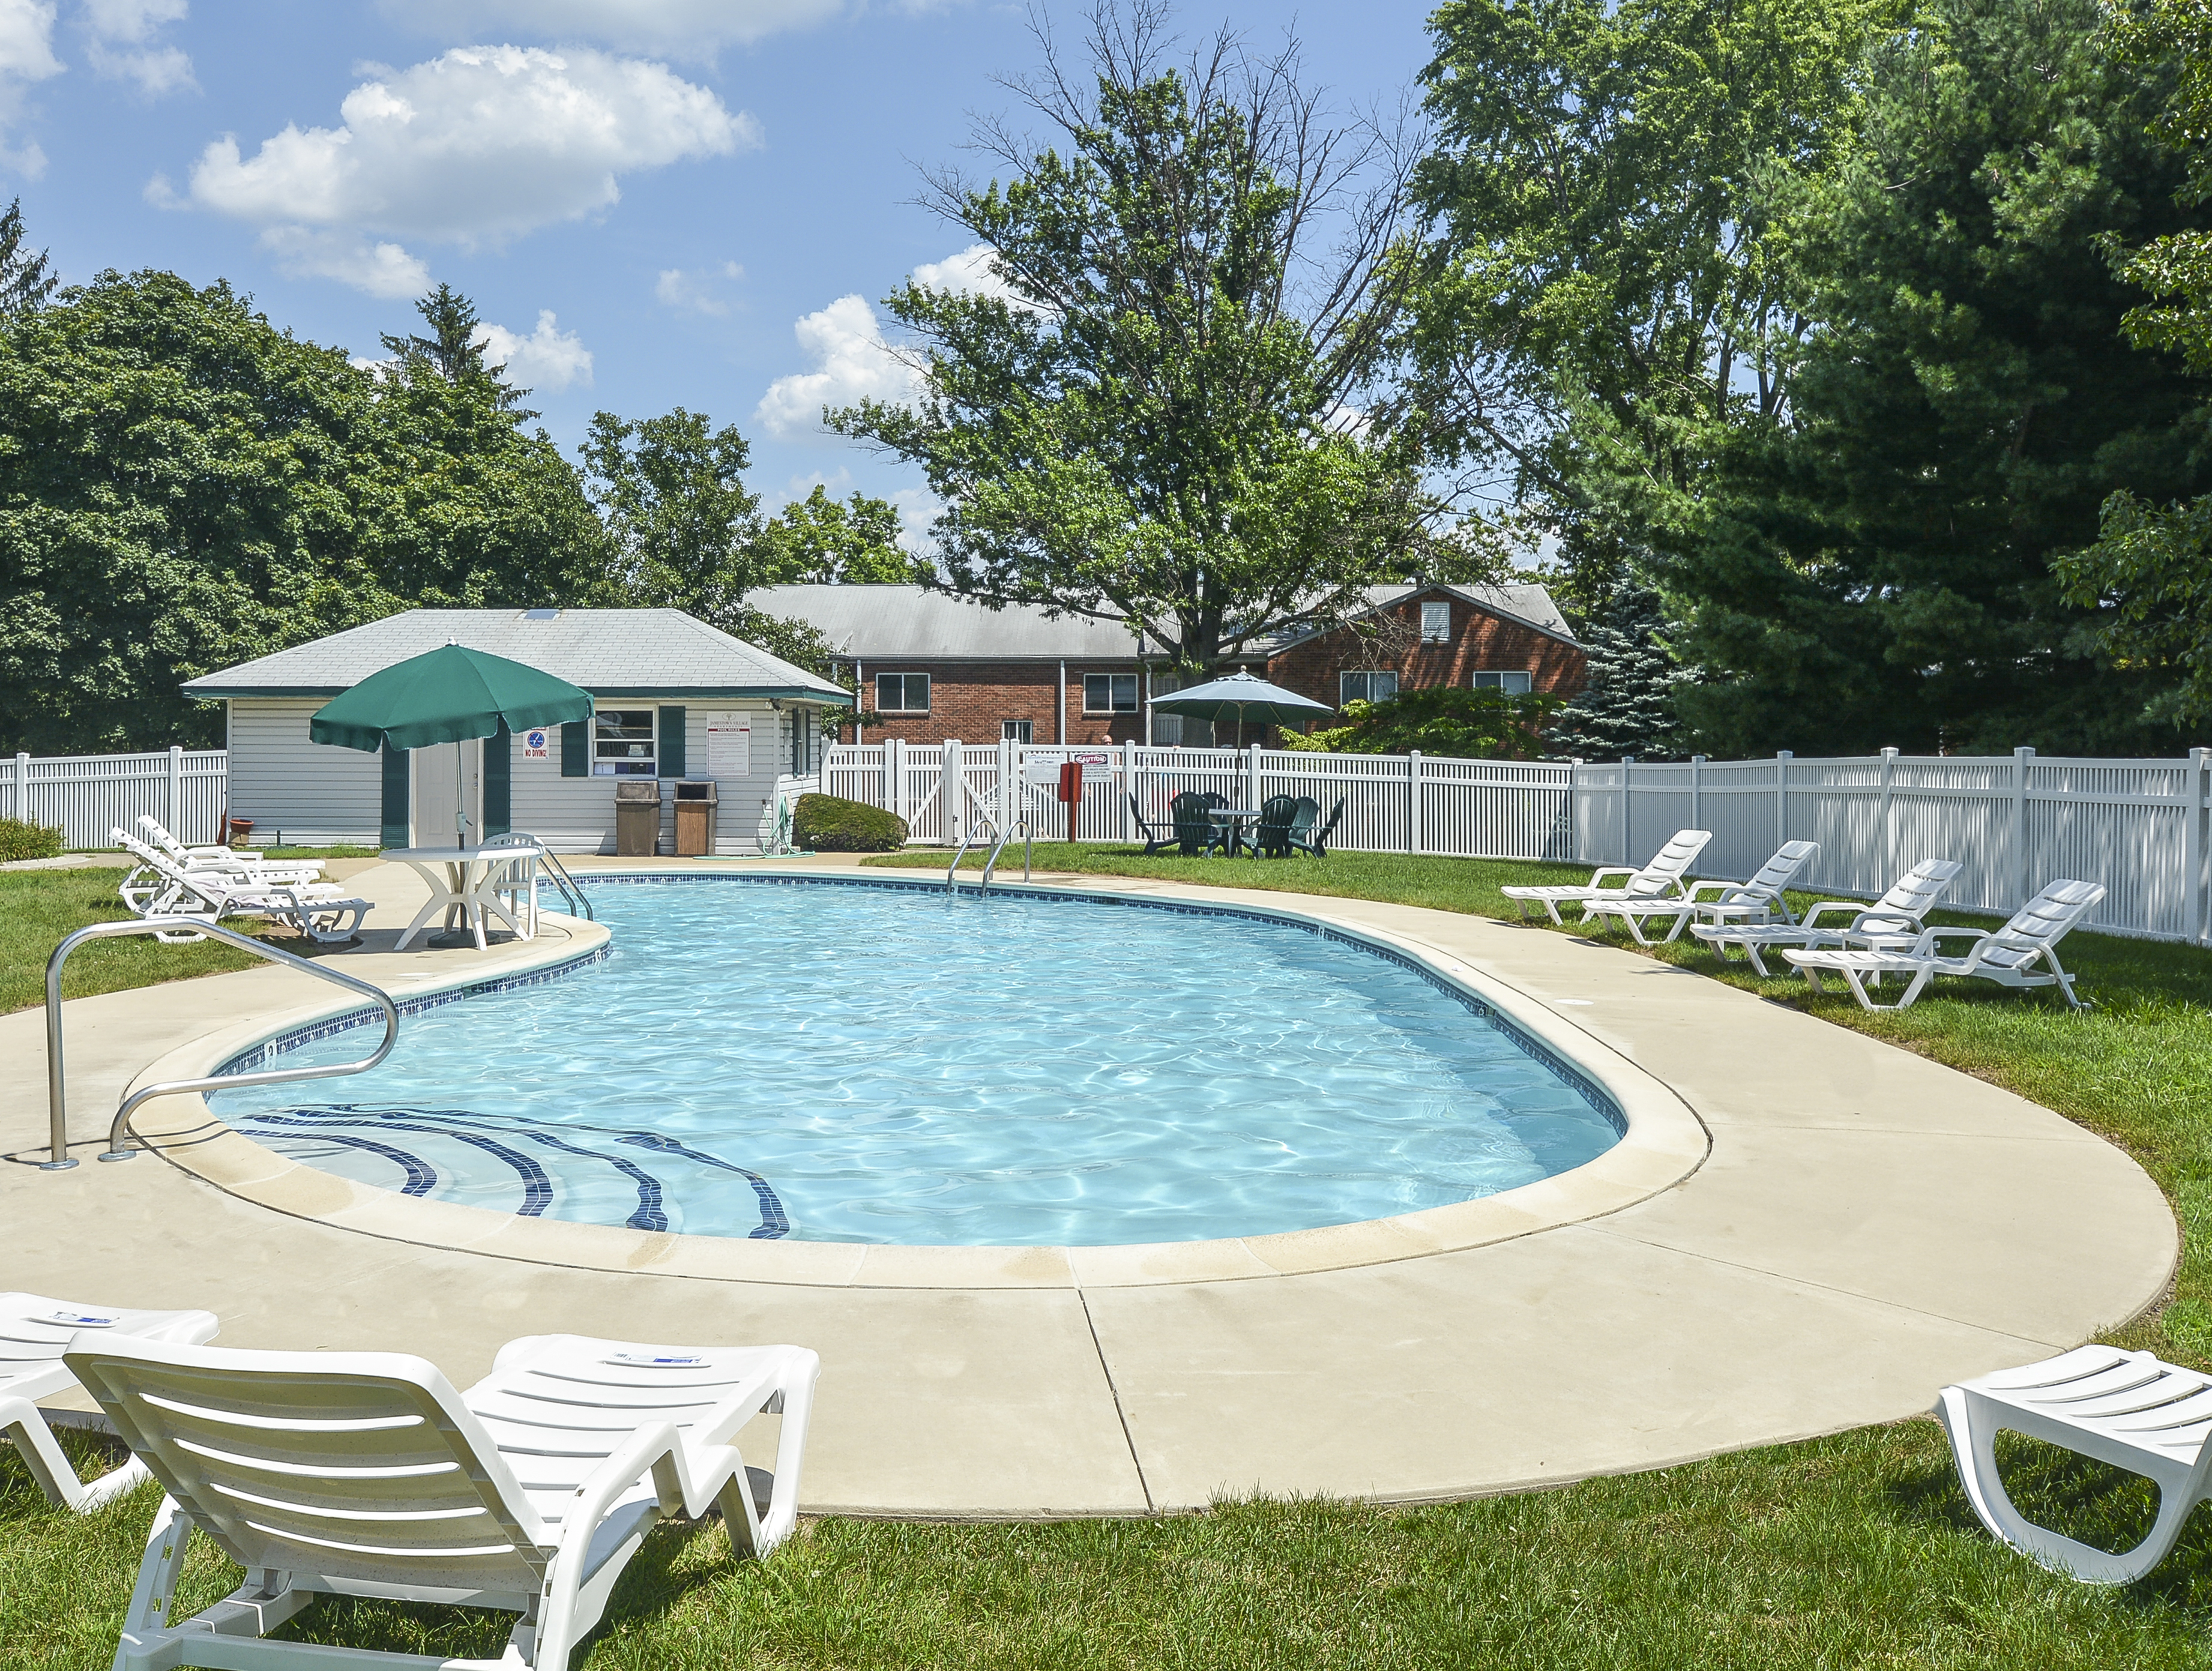 Jamestown Village Swimming Pool with White Chairs | Willow Grove, PA Apartments